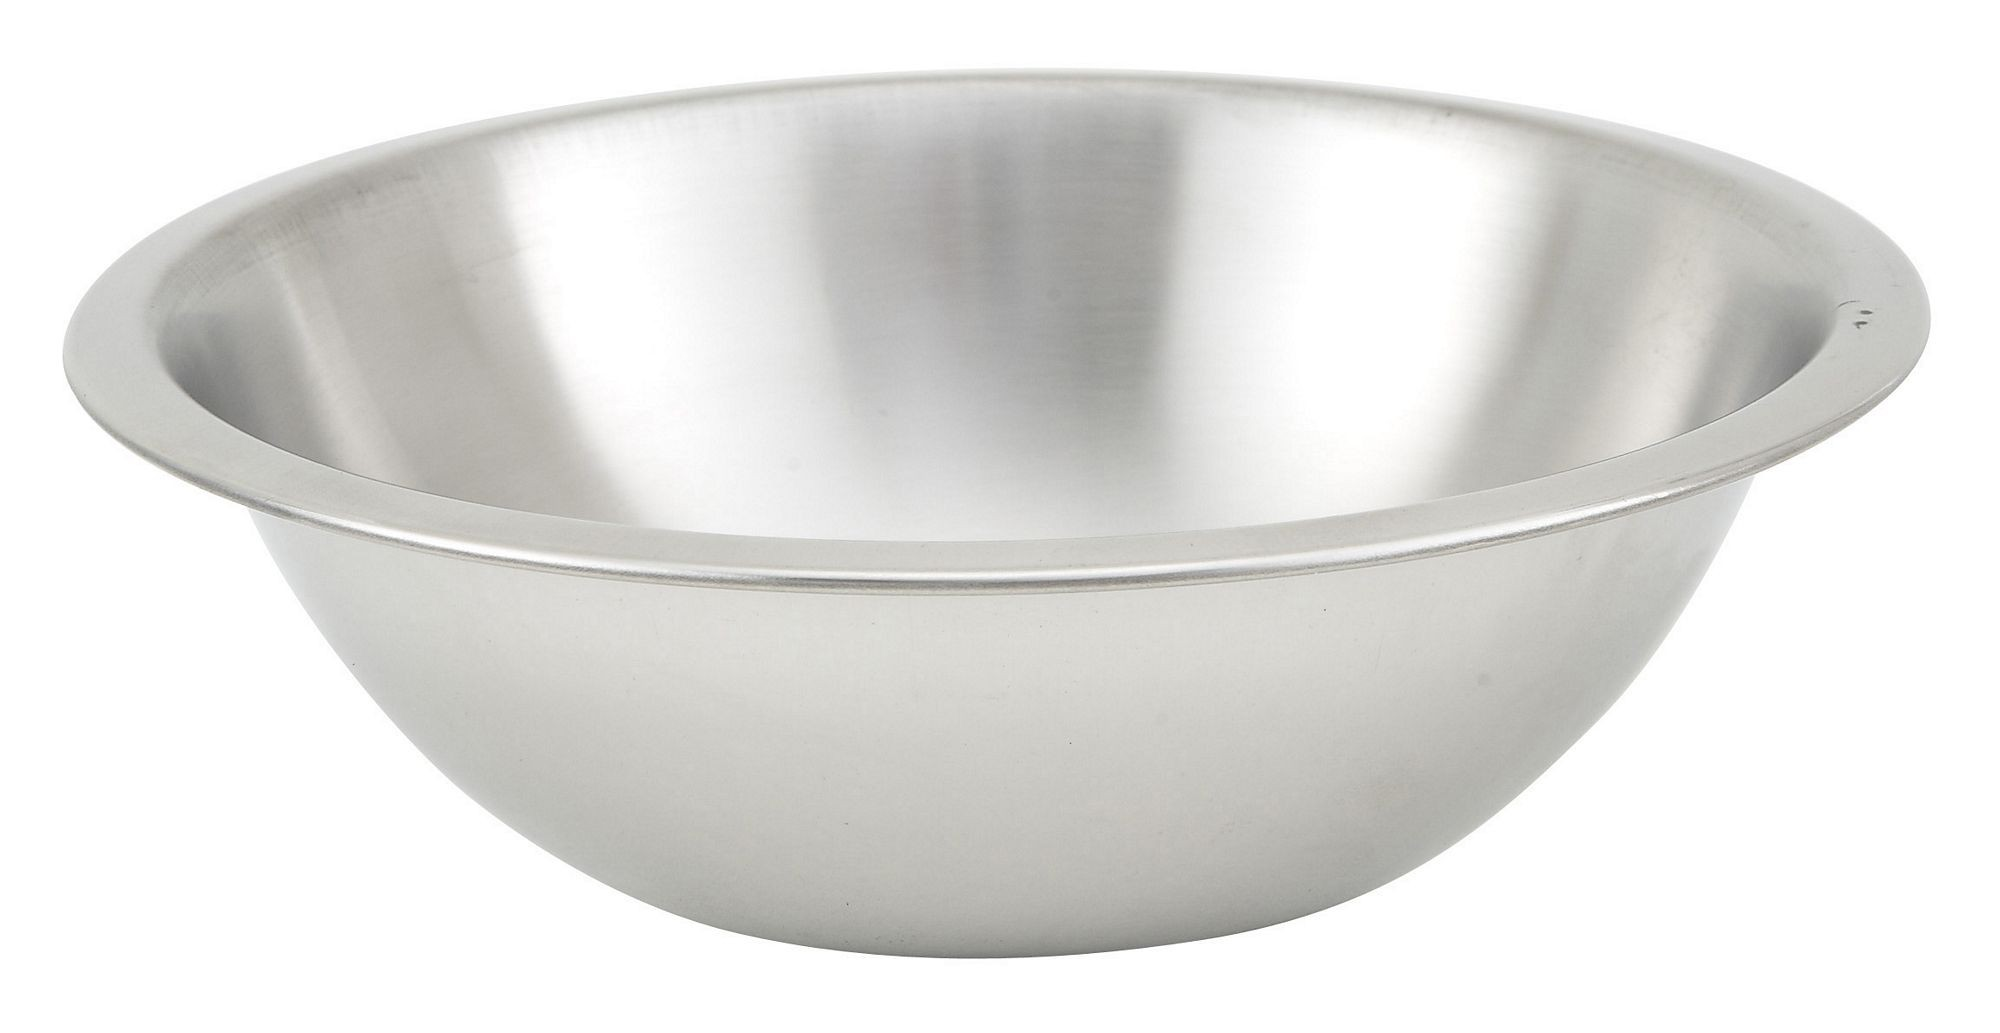 Winco MXHV-75 Heavy Duty Stainless Steel 3/4 Qt Mixing Bowl